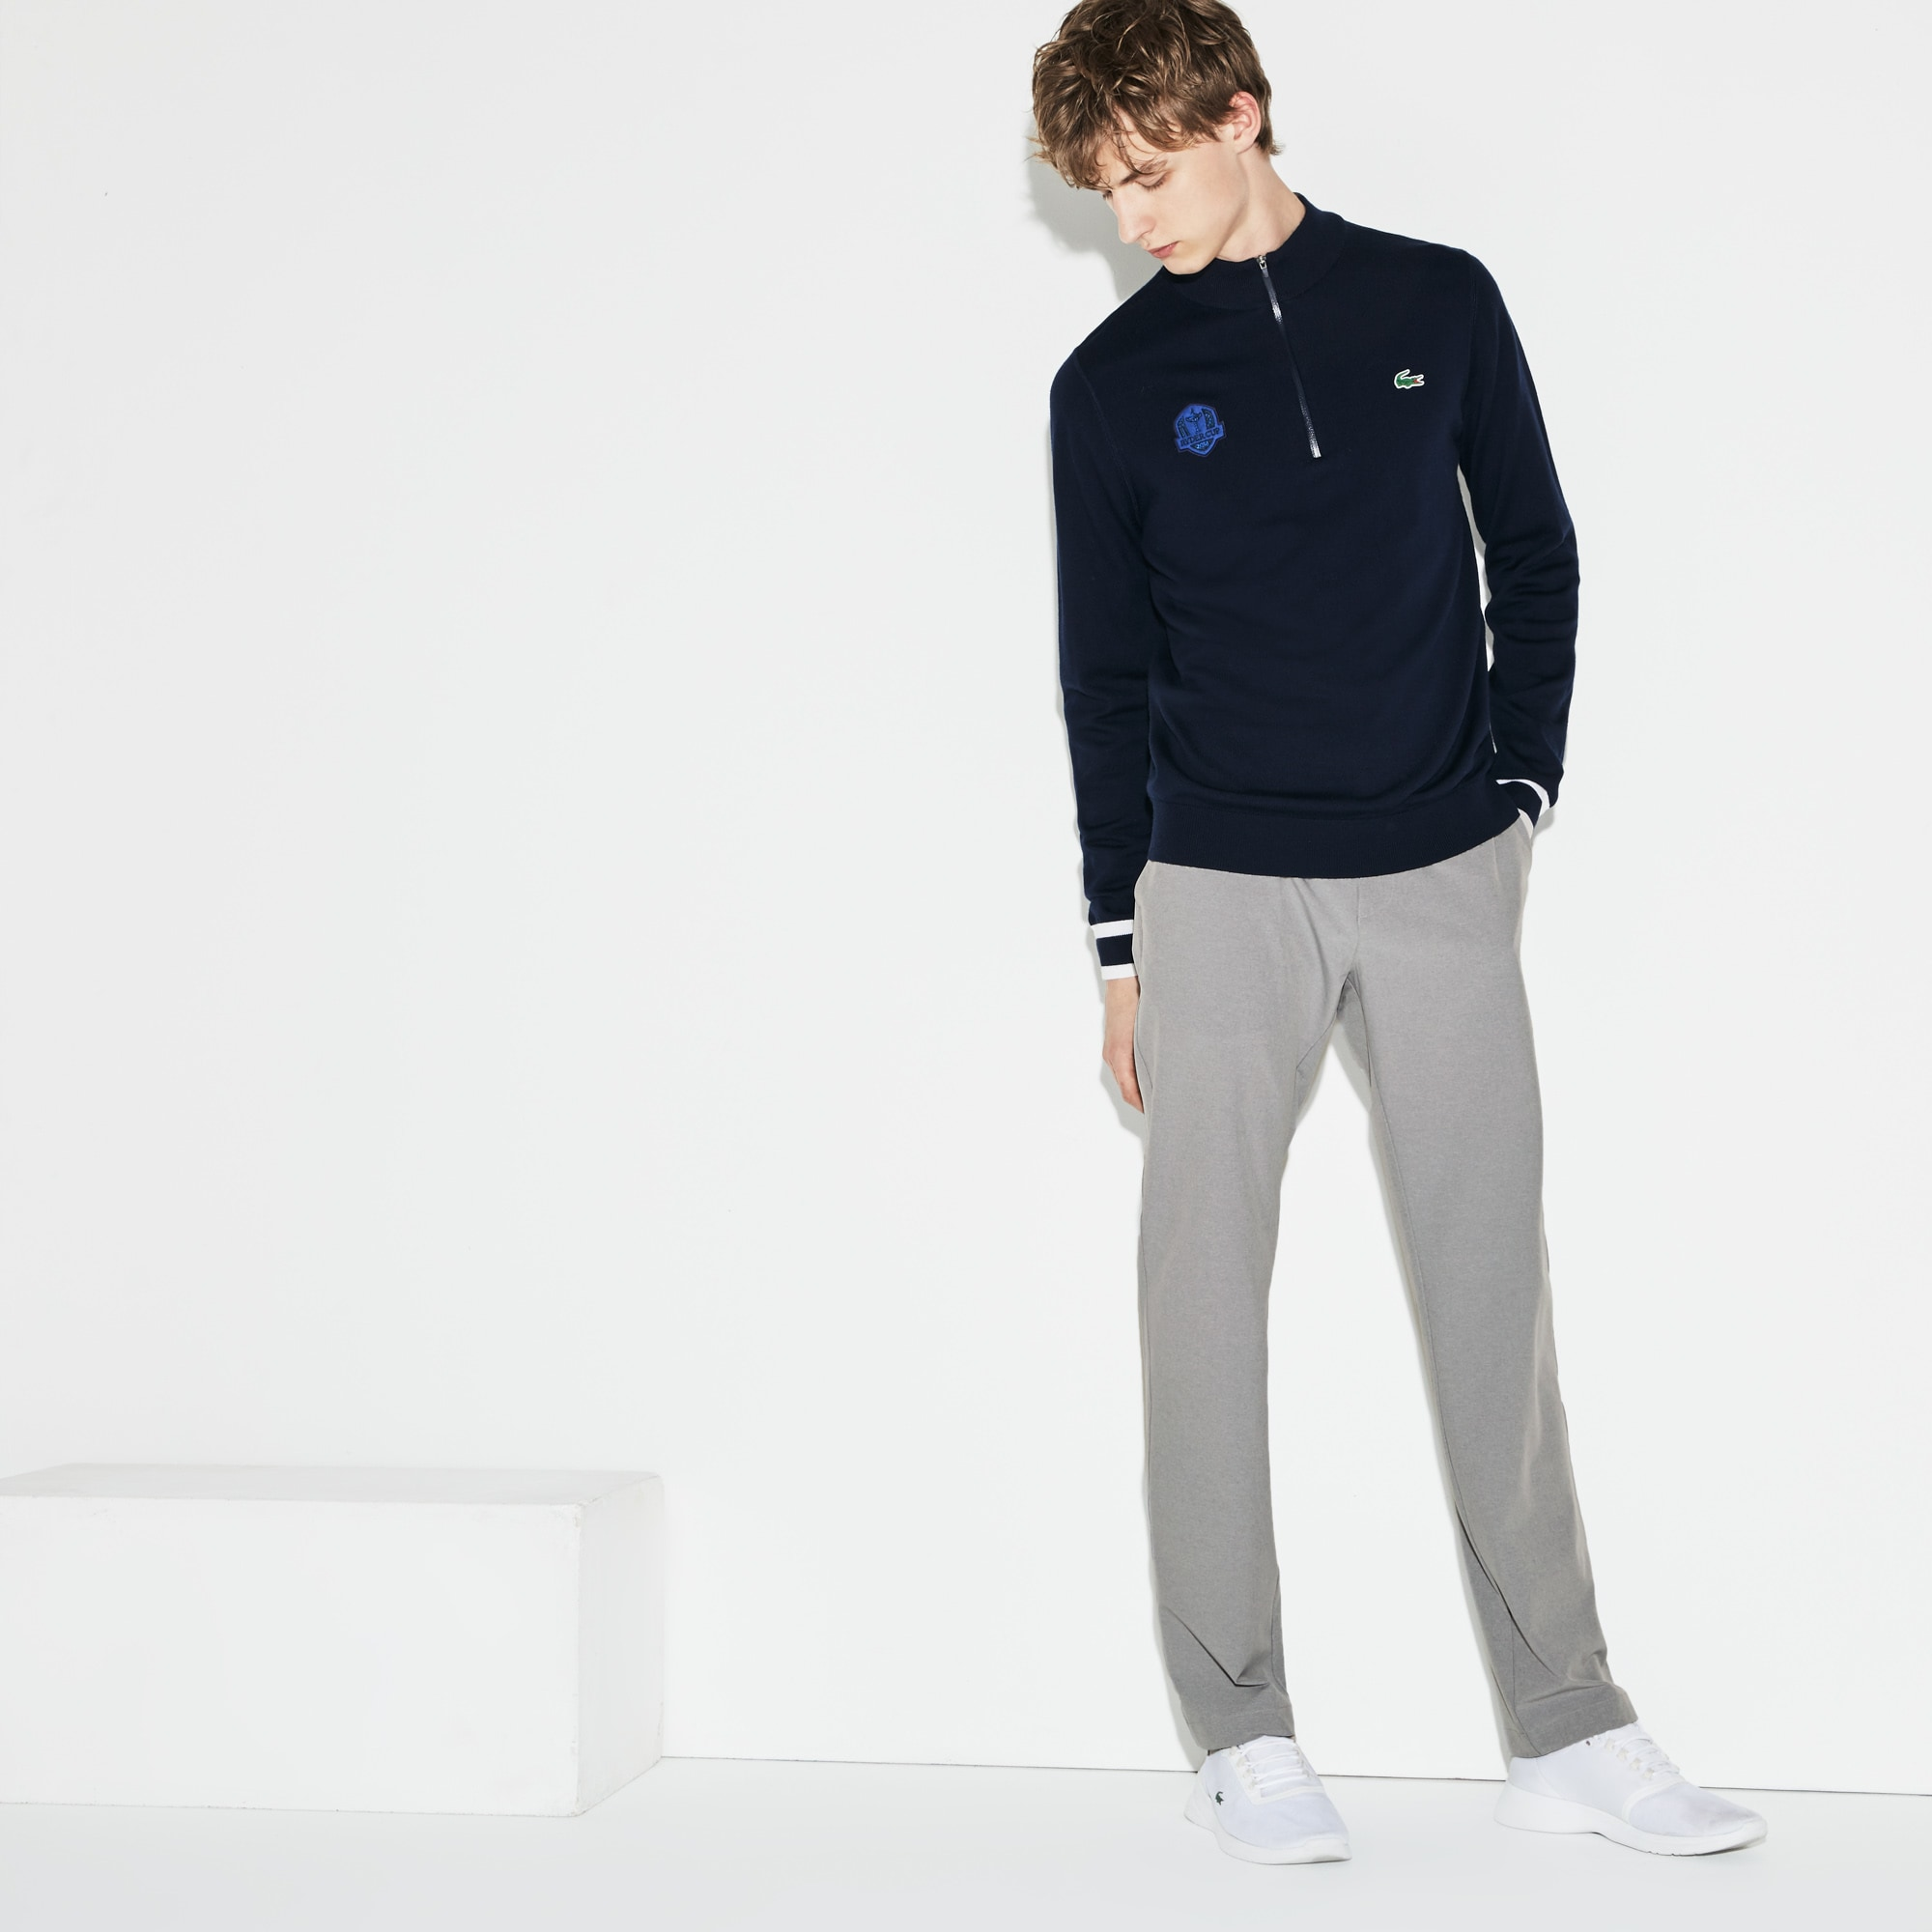 Men's Lacoste SPORT Ryder Cup Edition Taffeta Golf Chino Pants